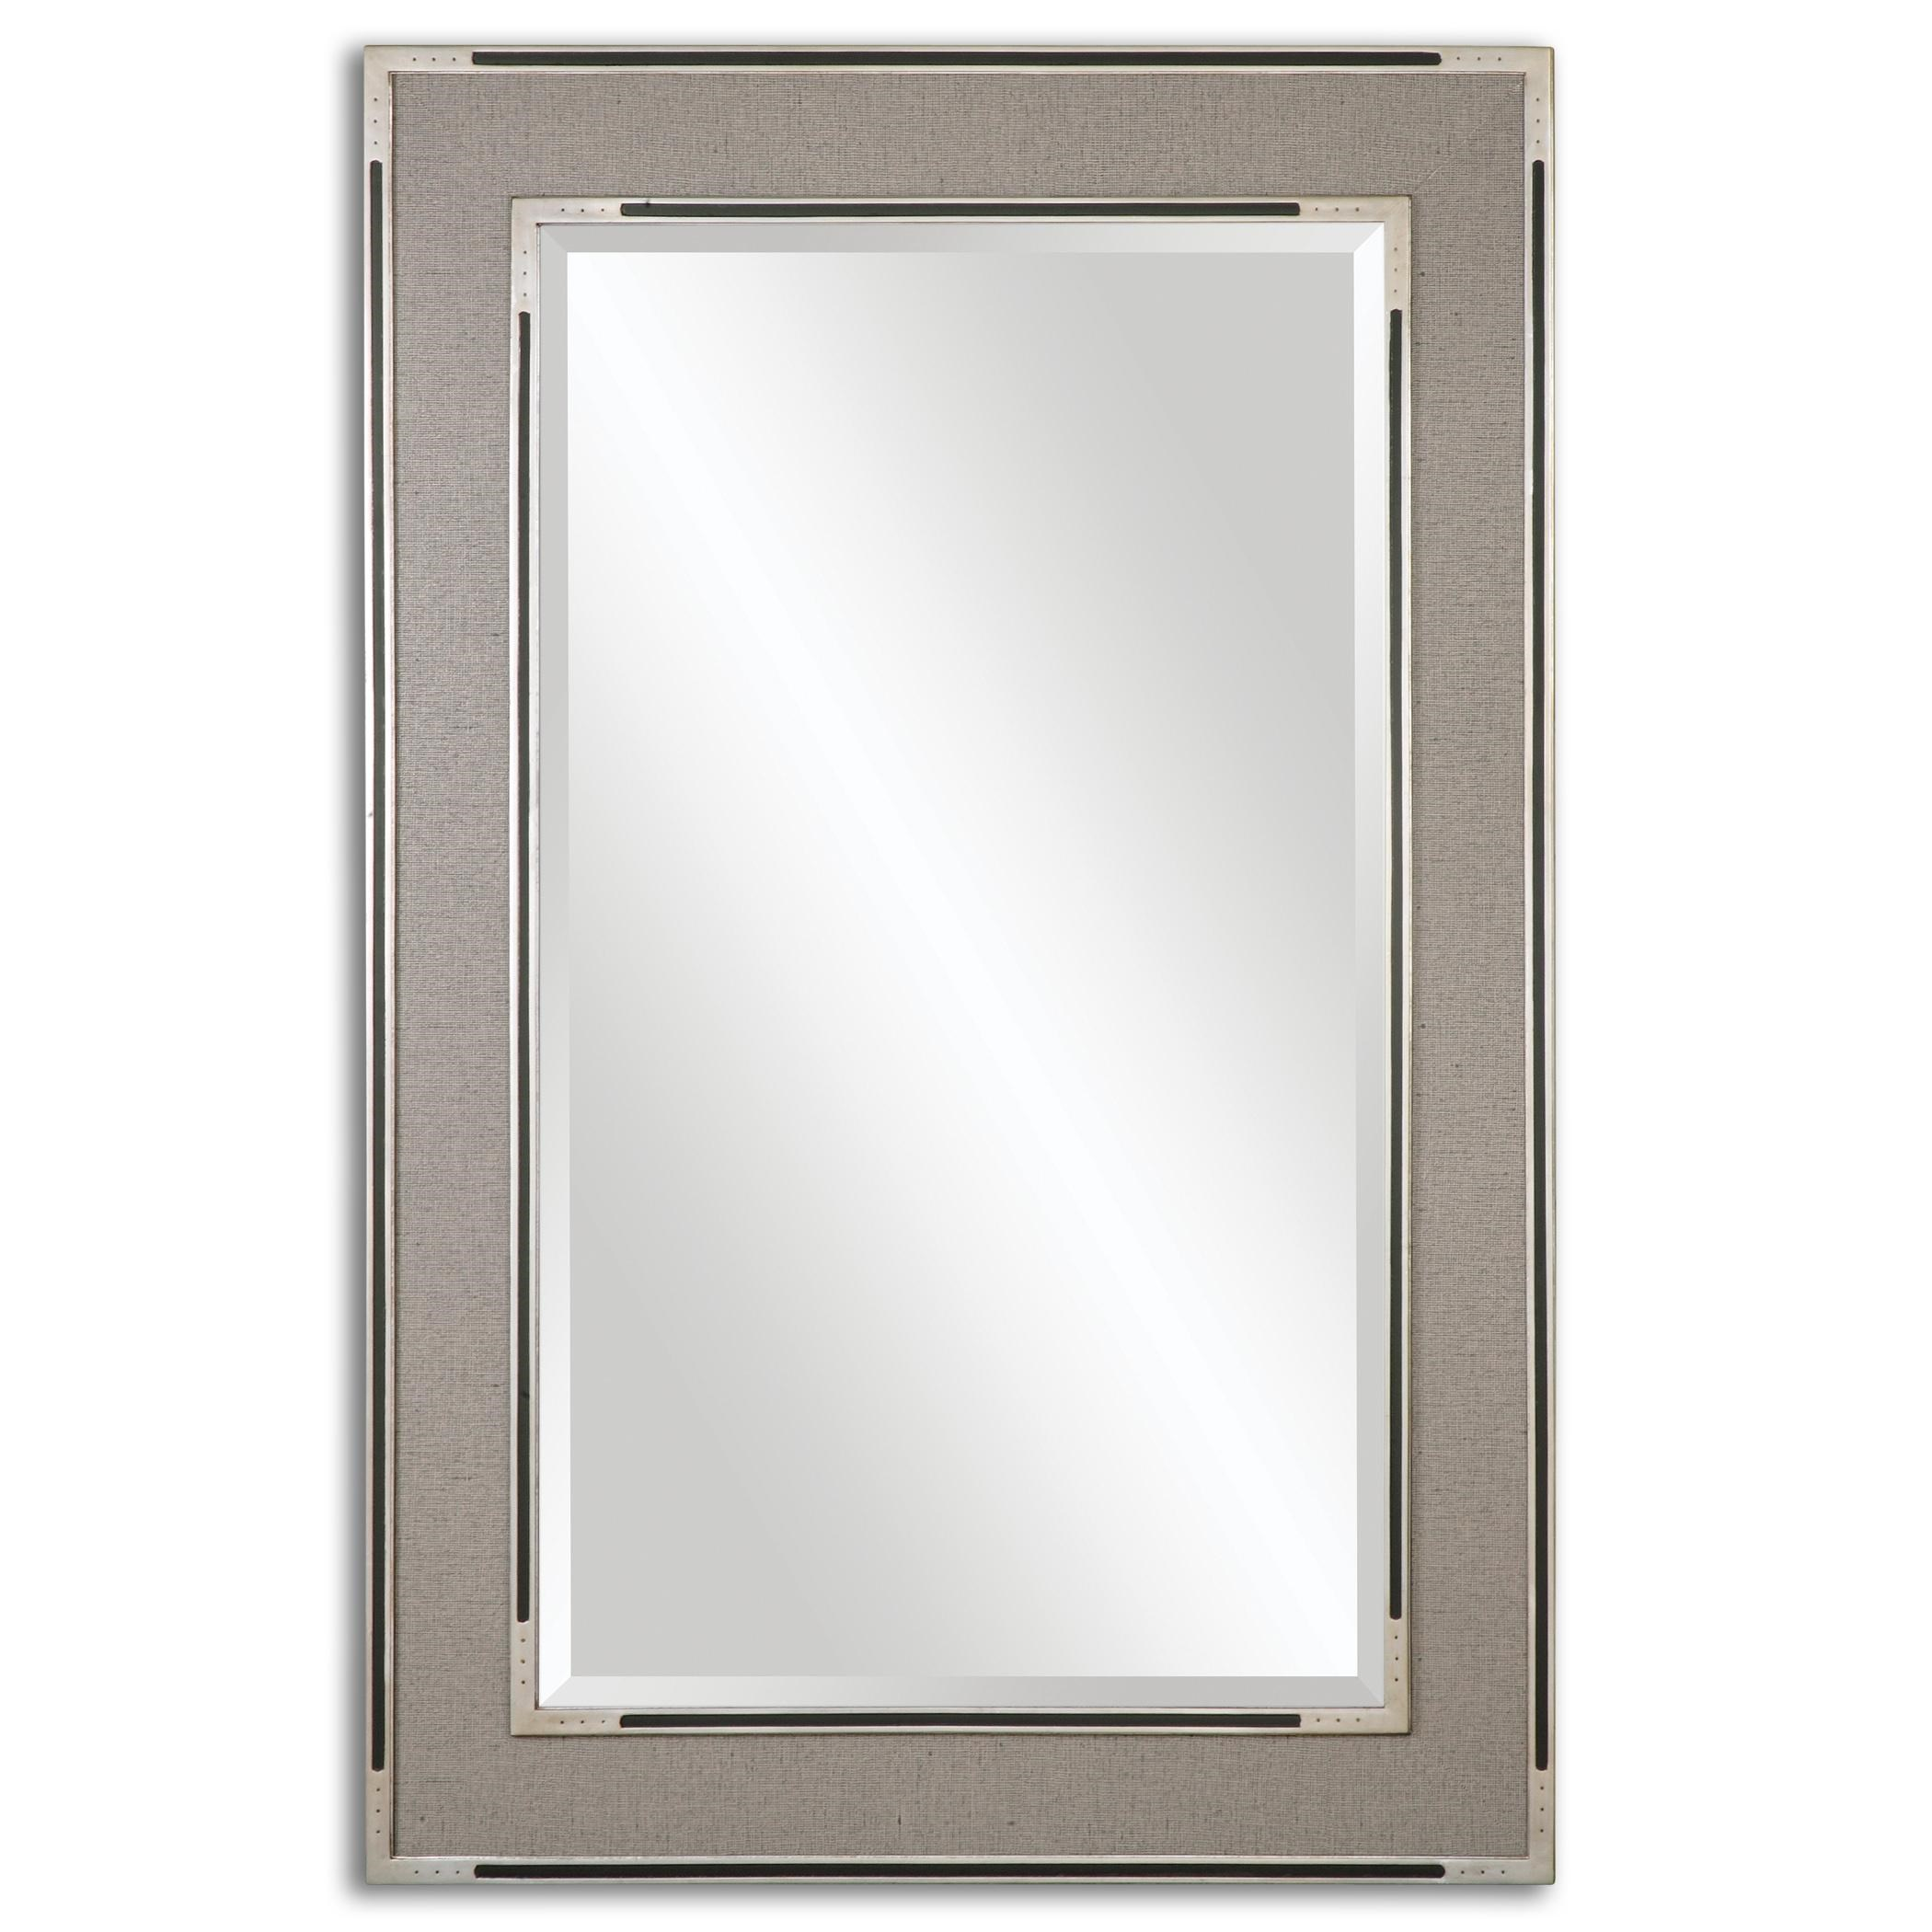 Uttermost Mirrors Alfred Oversized Gray Tan Mirror | Miskelly Furniture |  Wall Mirrors